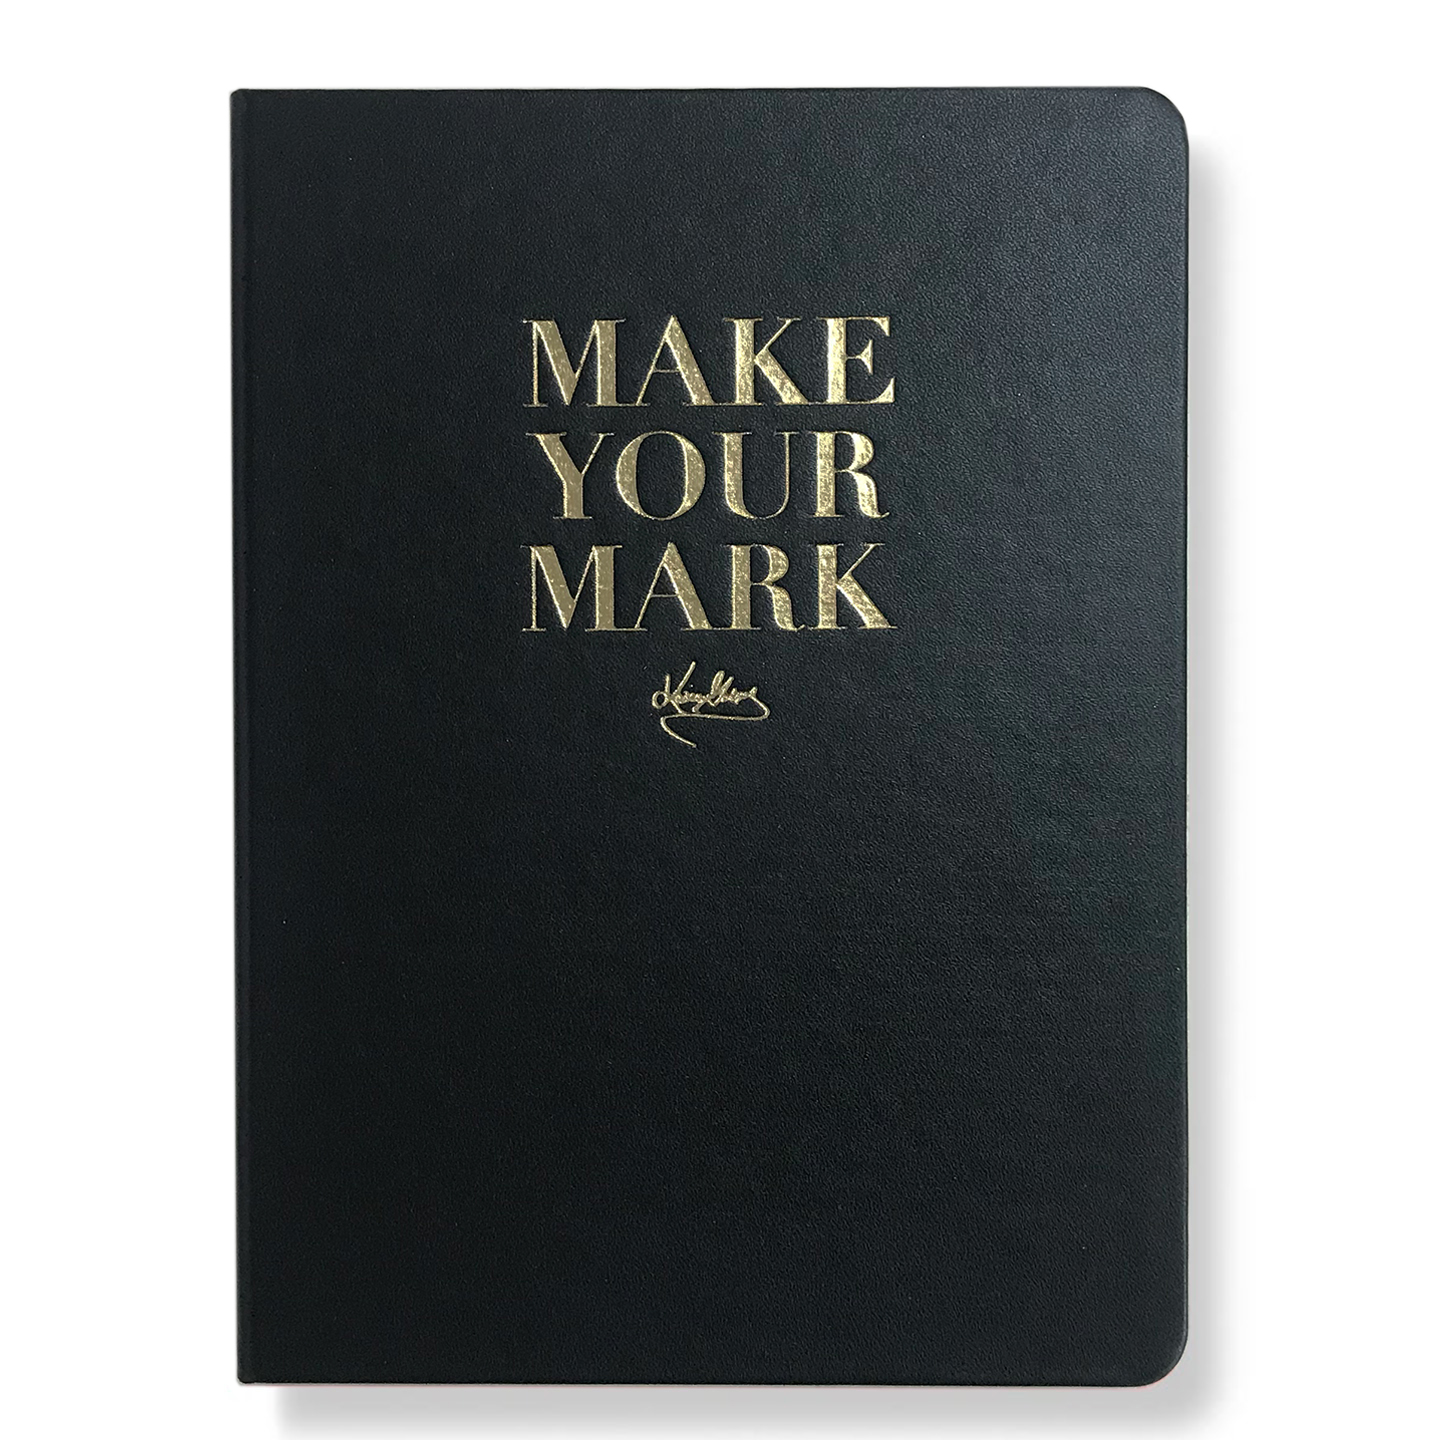 Black hardcover journal with make your mark words in gold.